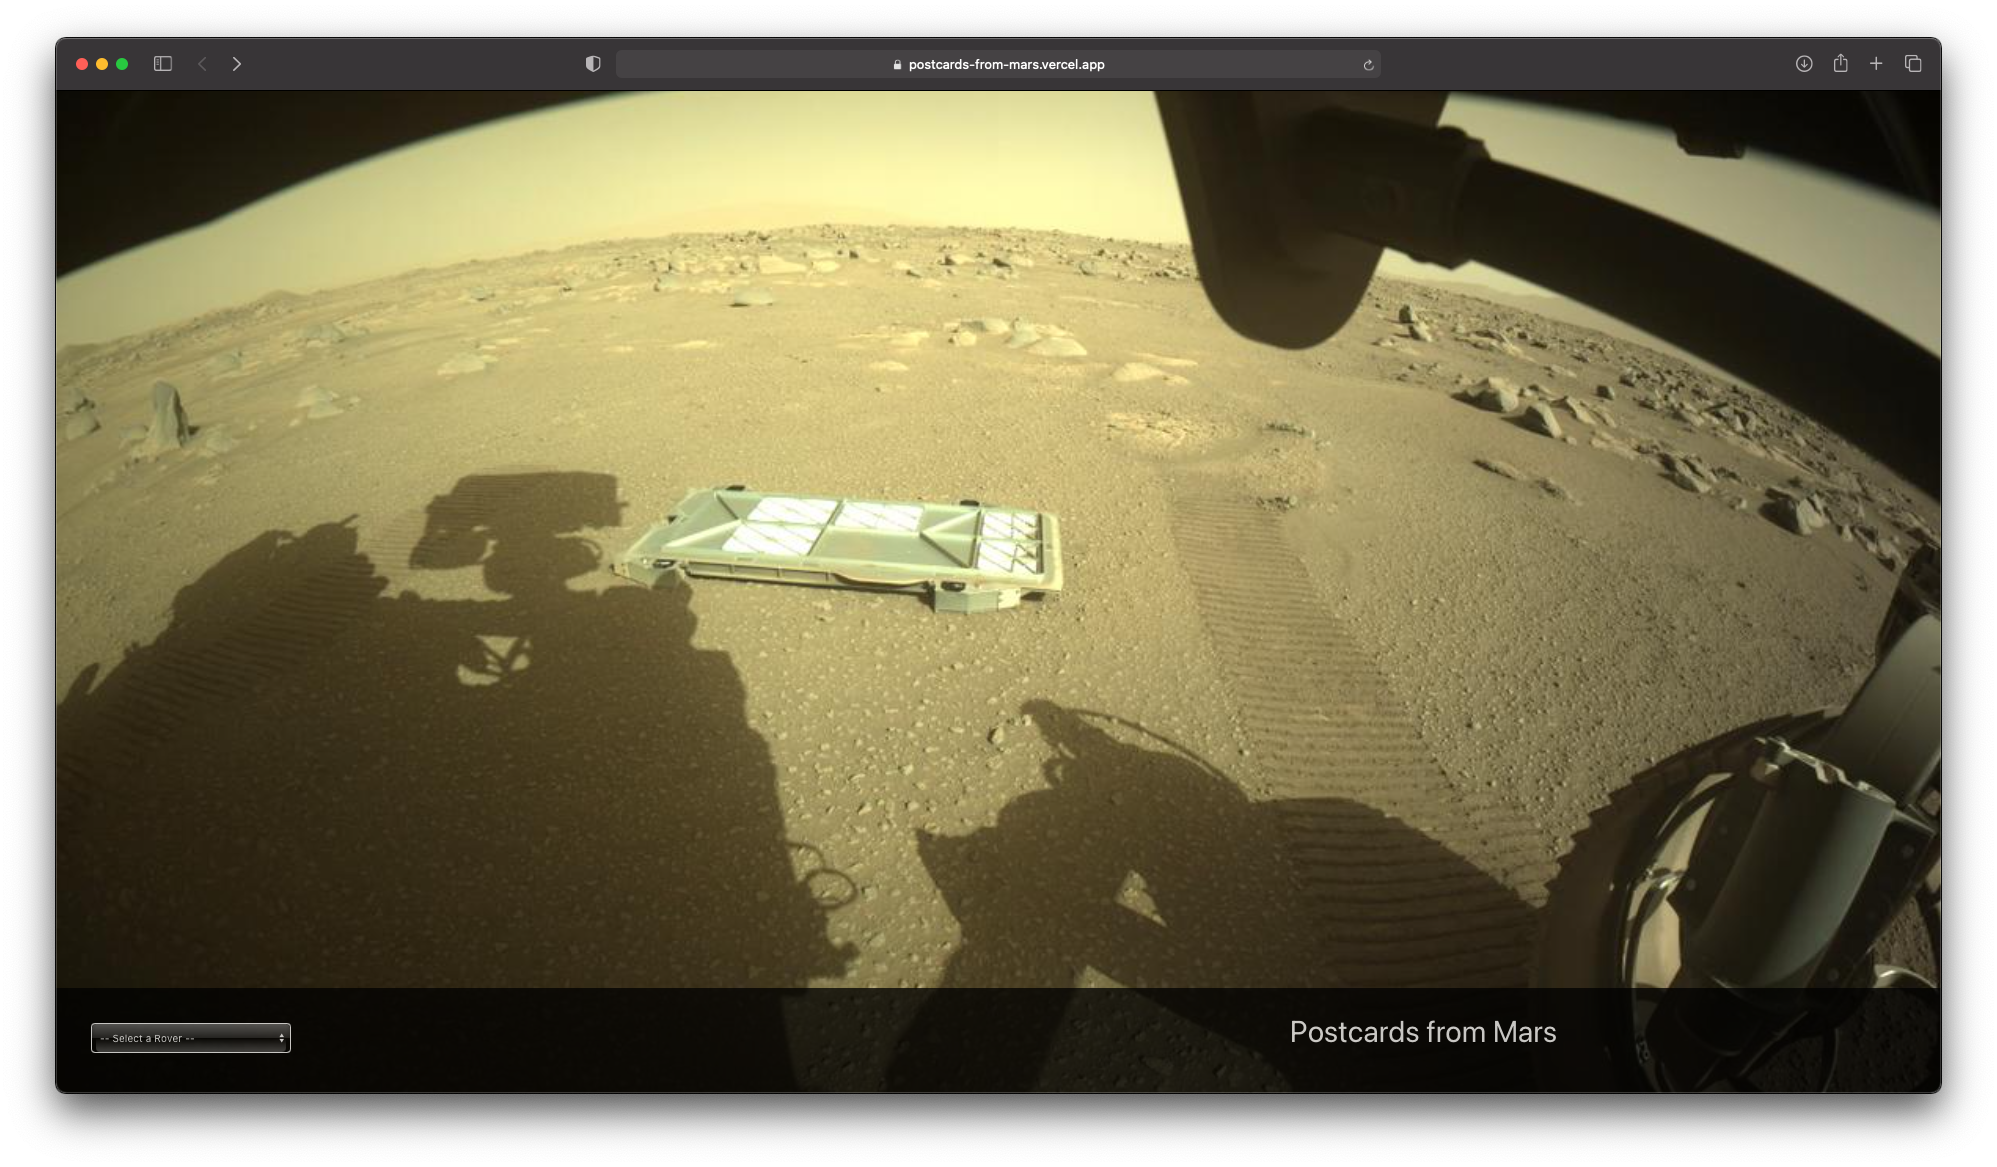 Screenshot of the Postcards from Mars application.